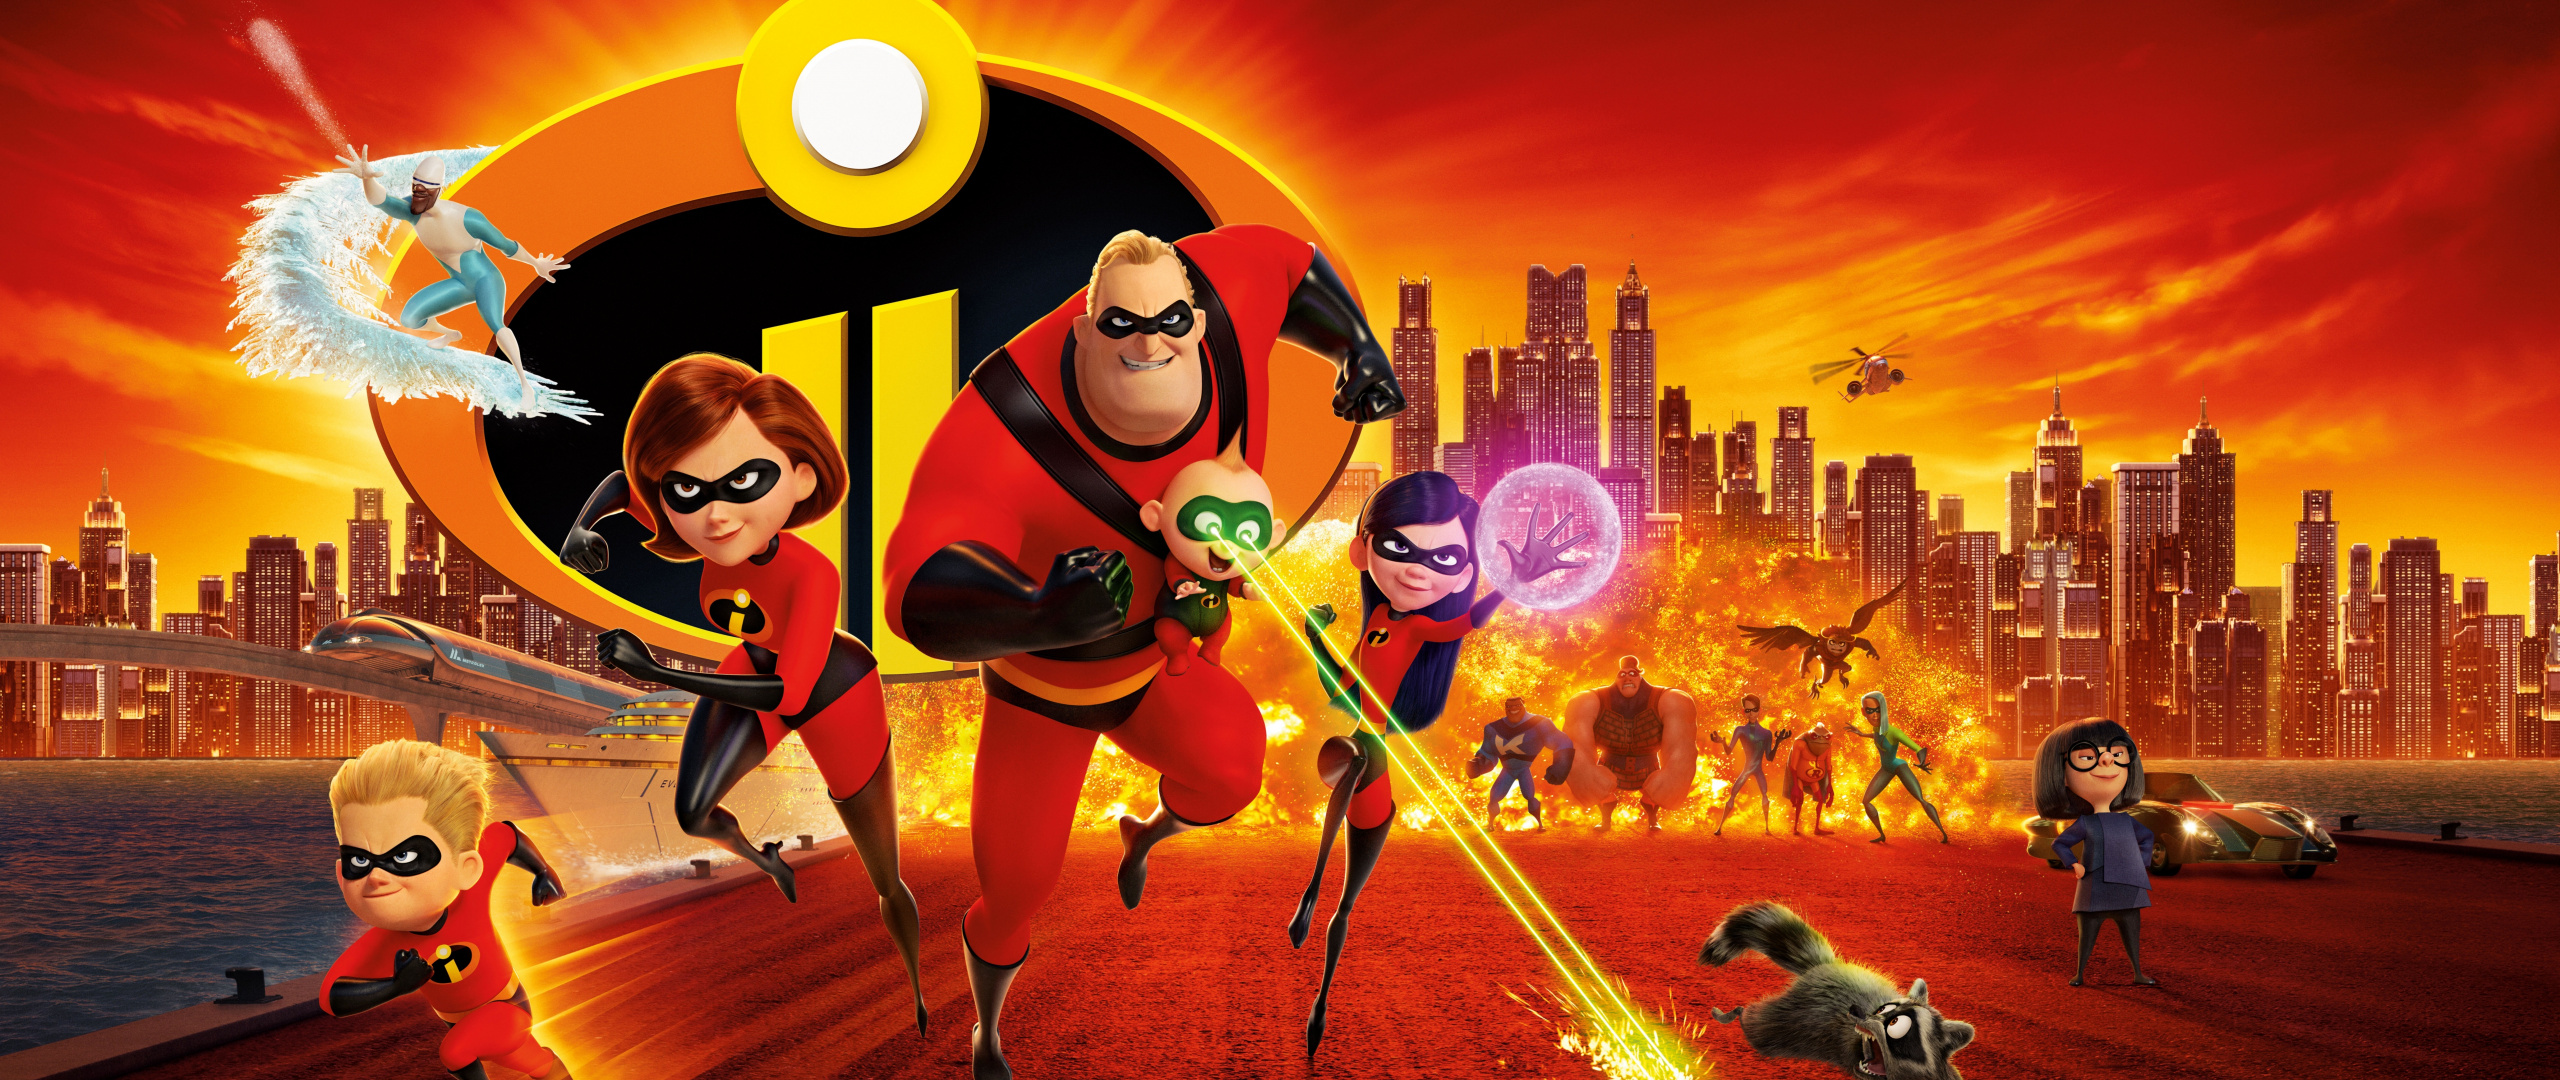 the-incredibles-2-8k-poster.jpg